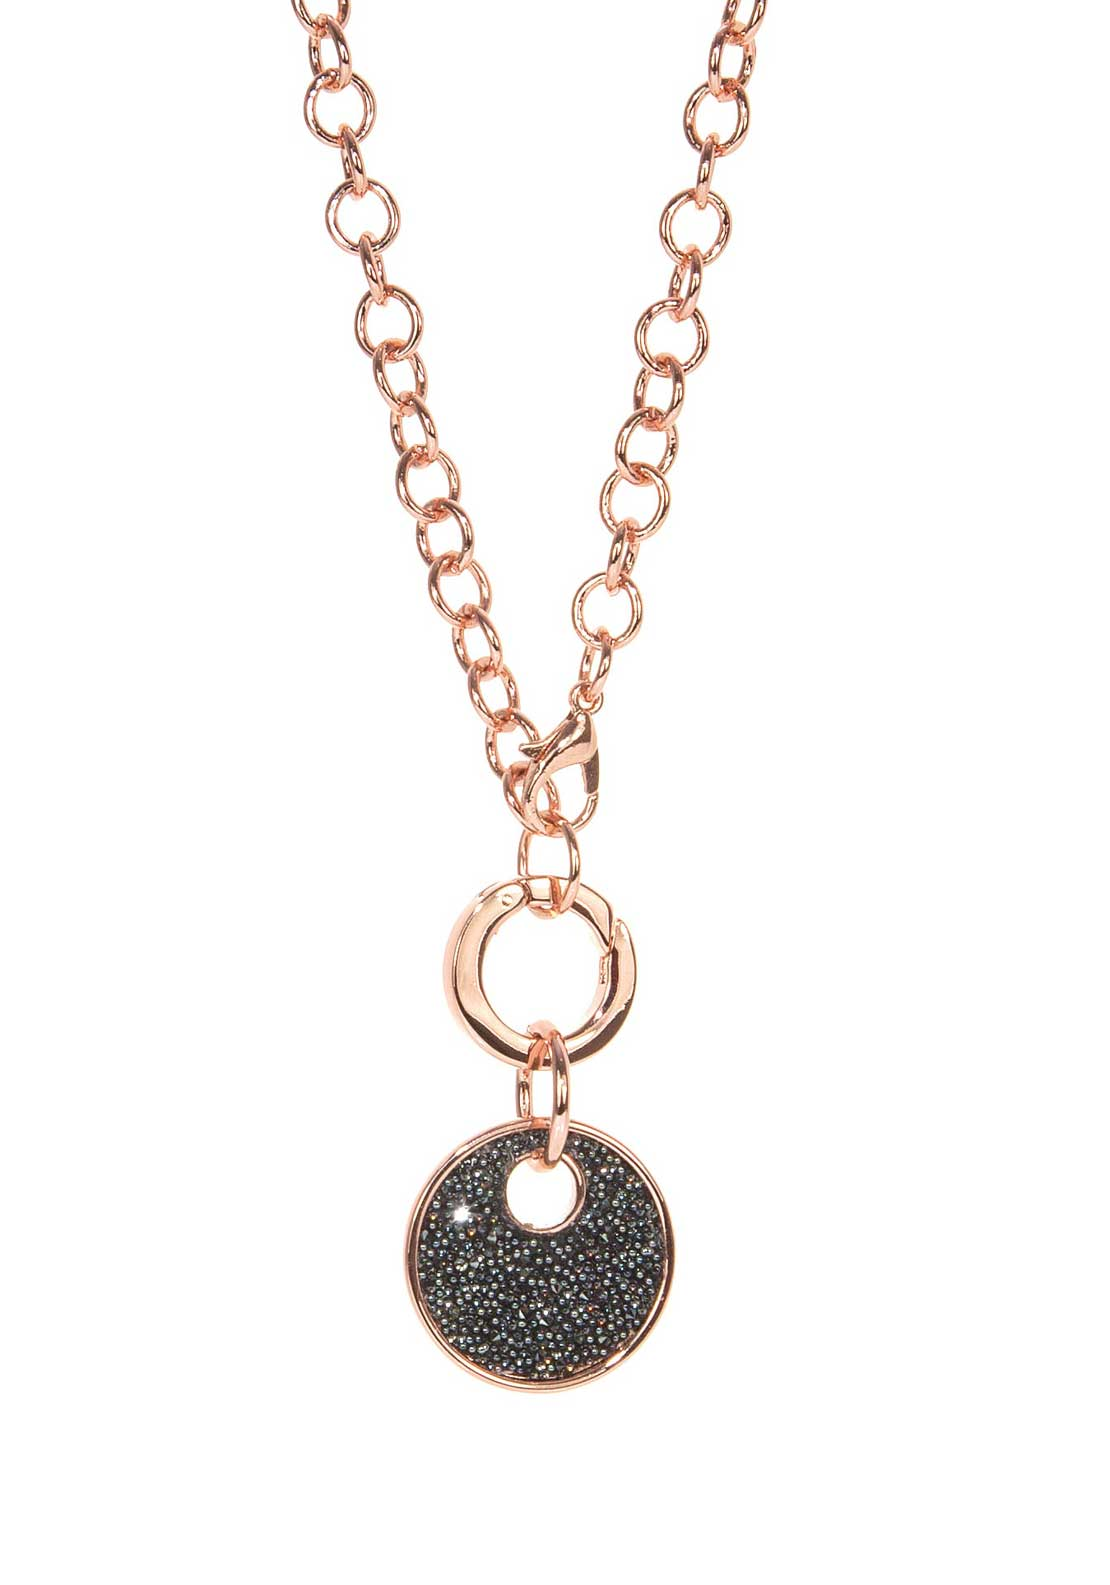 Absolute Jewellery Chain Bracelet with Black Coin Pendant, Rose Gold